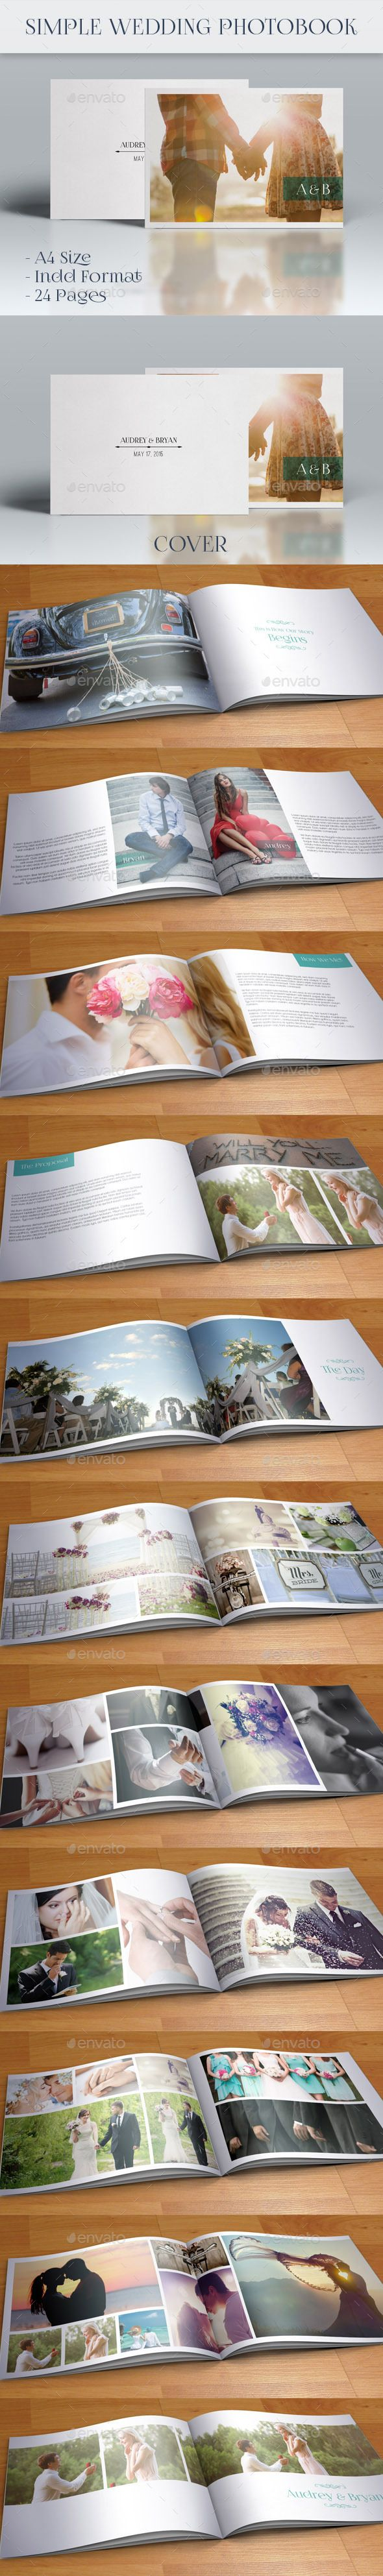 Best 25 Photo Album Printing Ideas On Pinterest